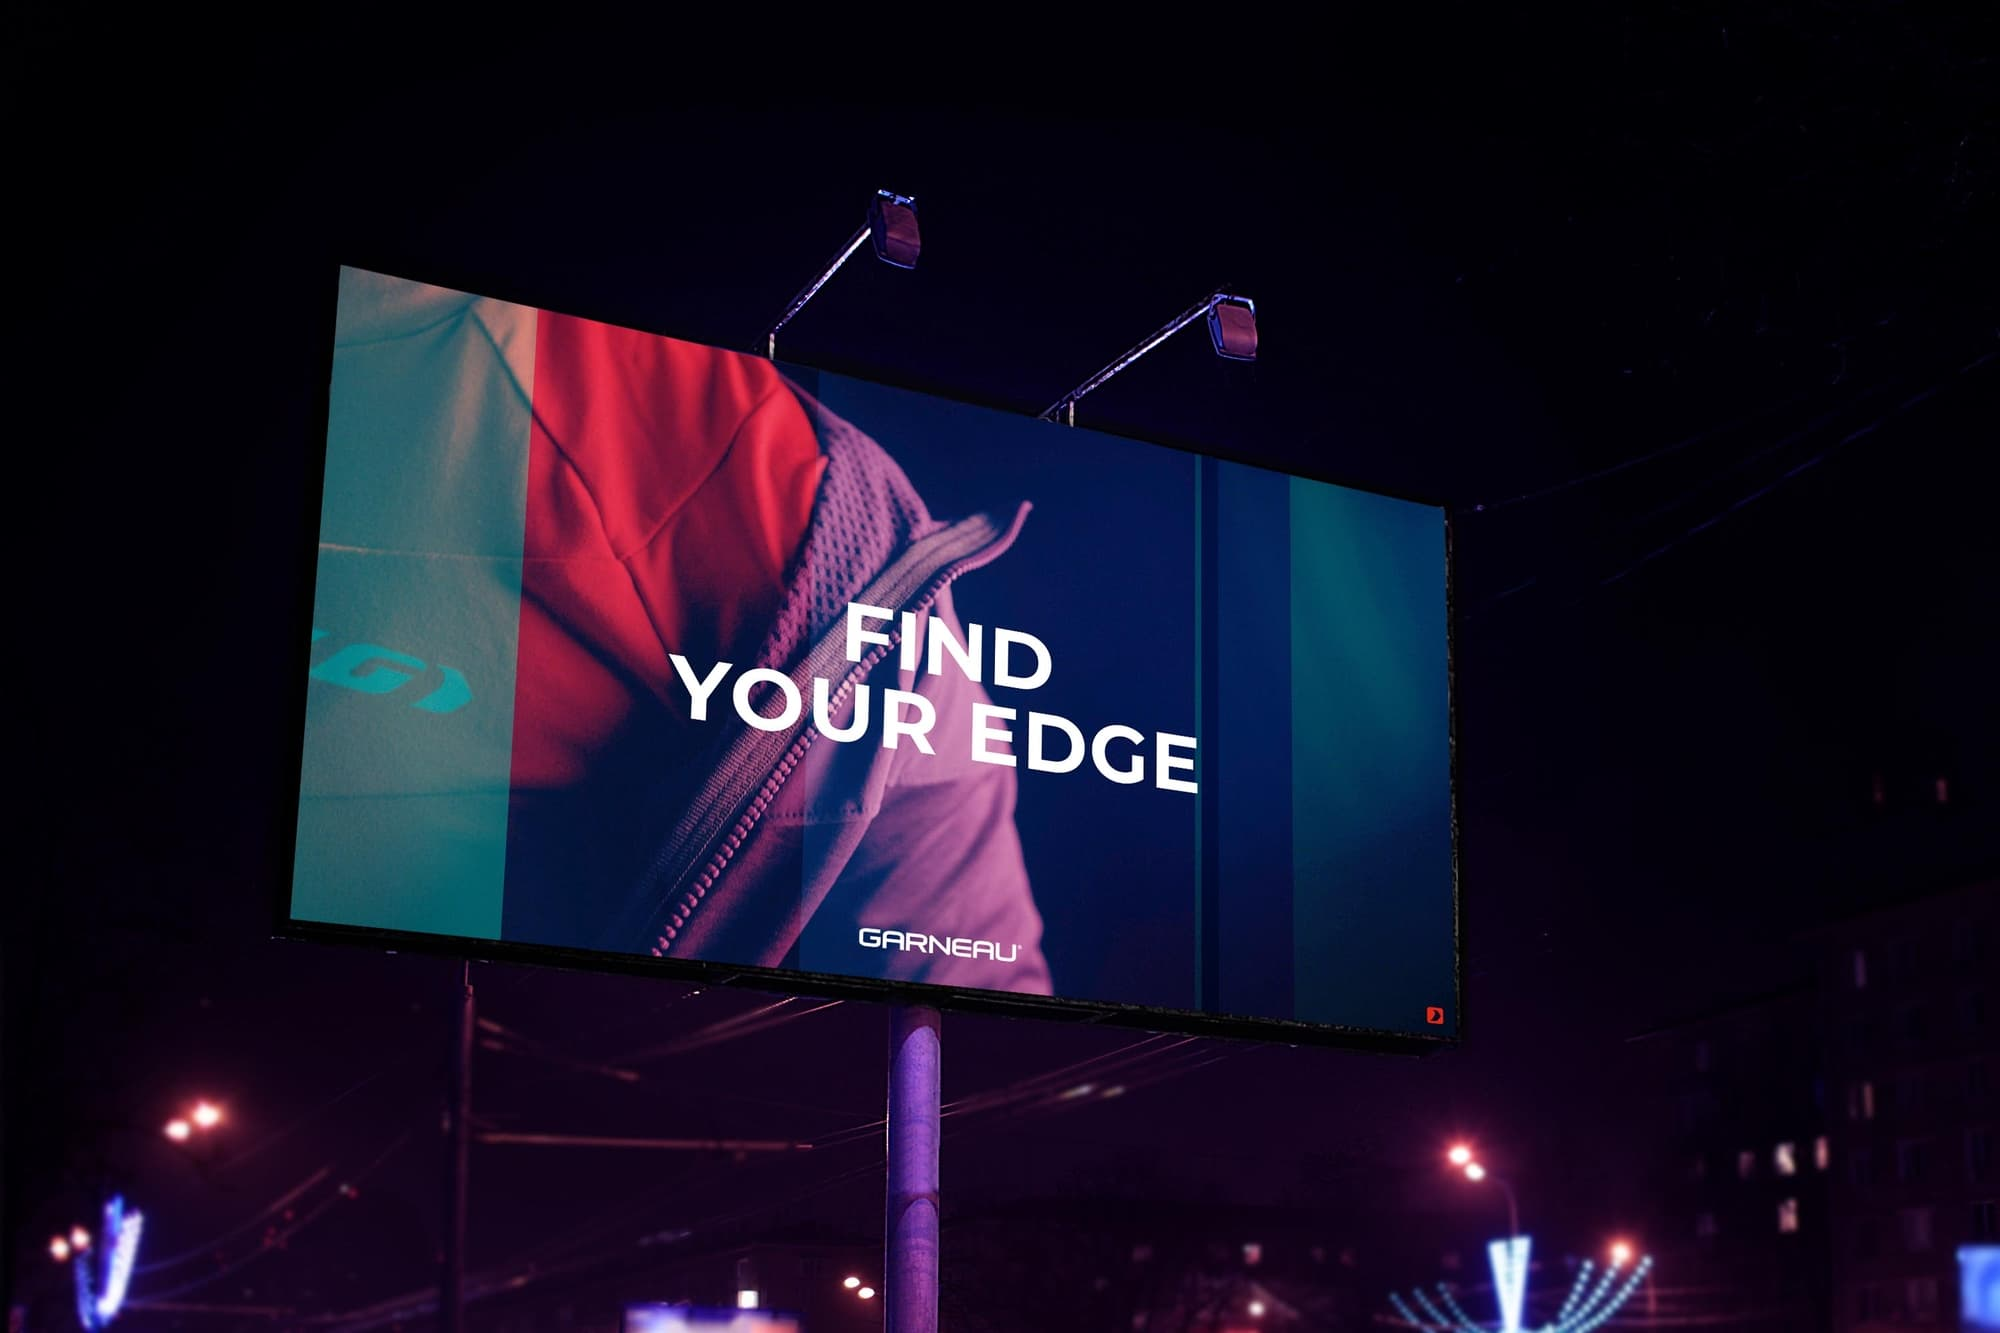 find-your-edge